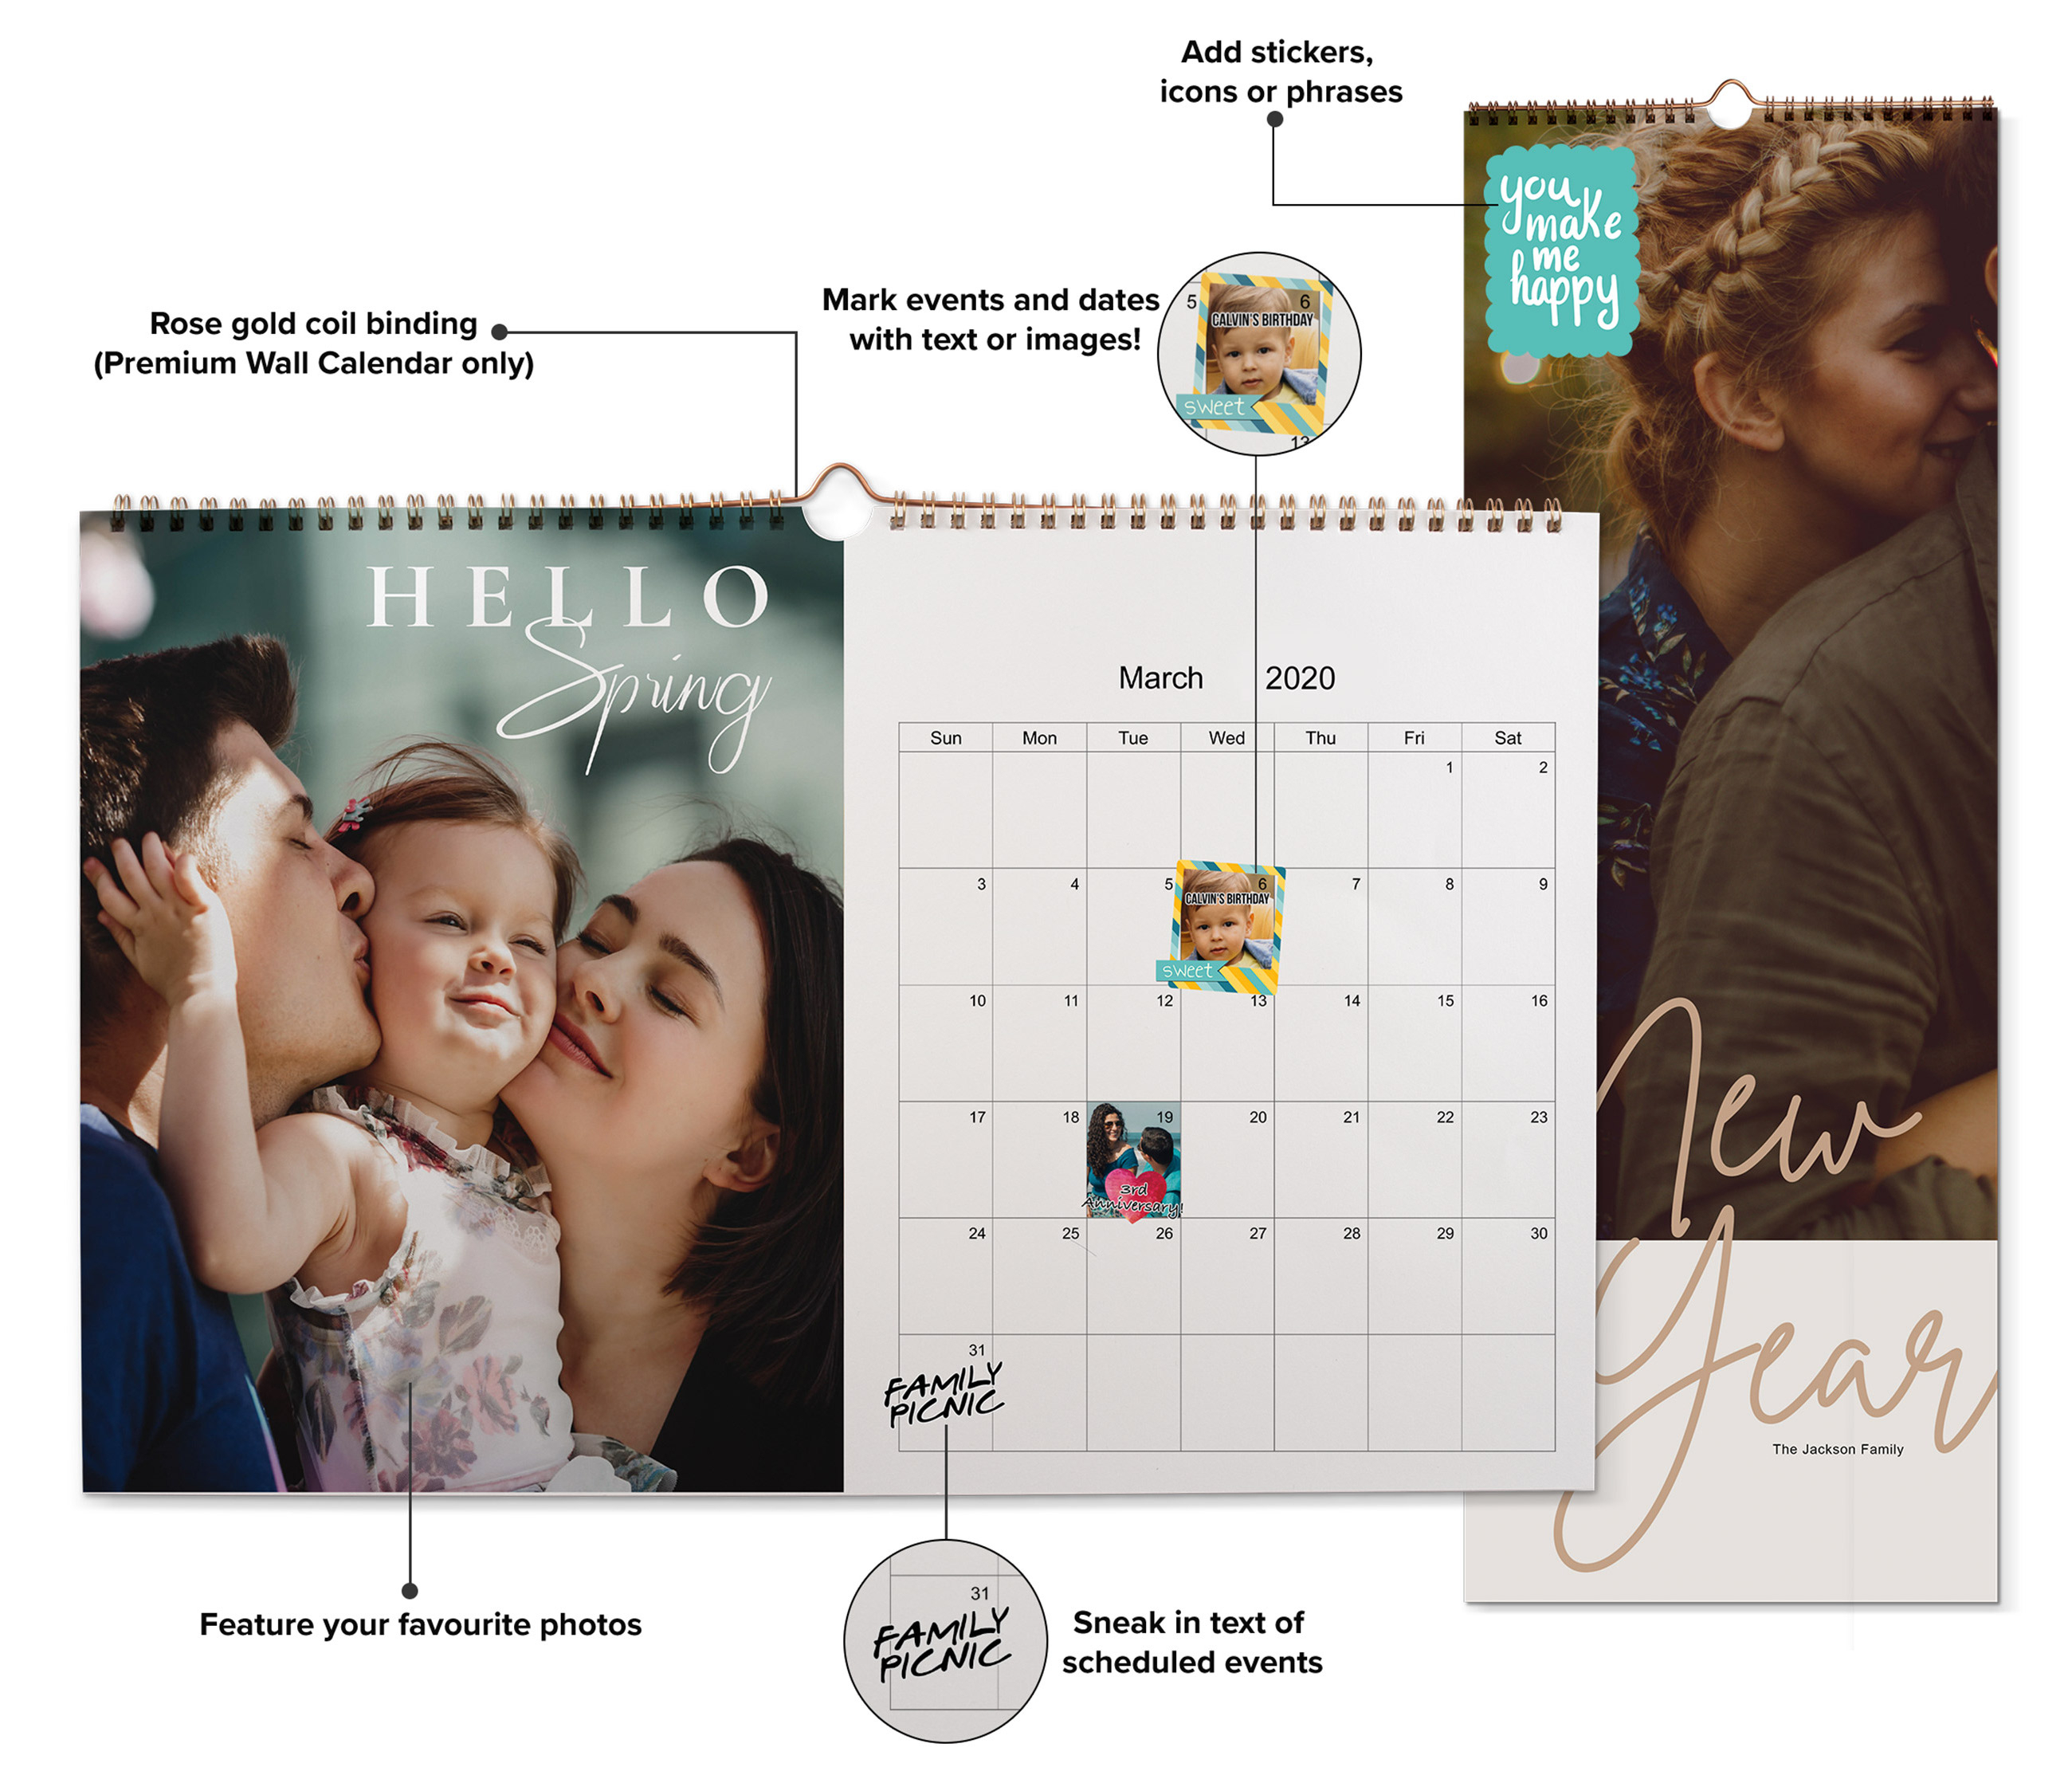 Custom Photo Calendars Philippines | Make Your Own @40% Off with Calendar Printing Services Philippines